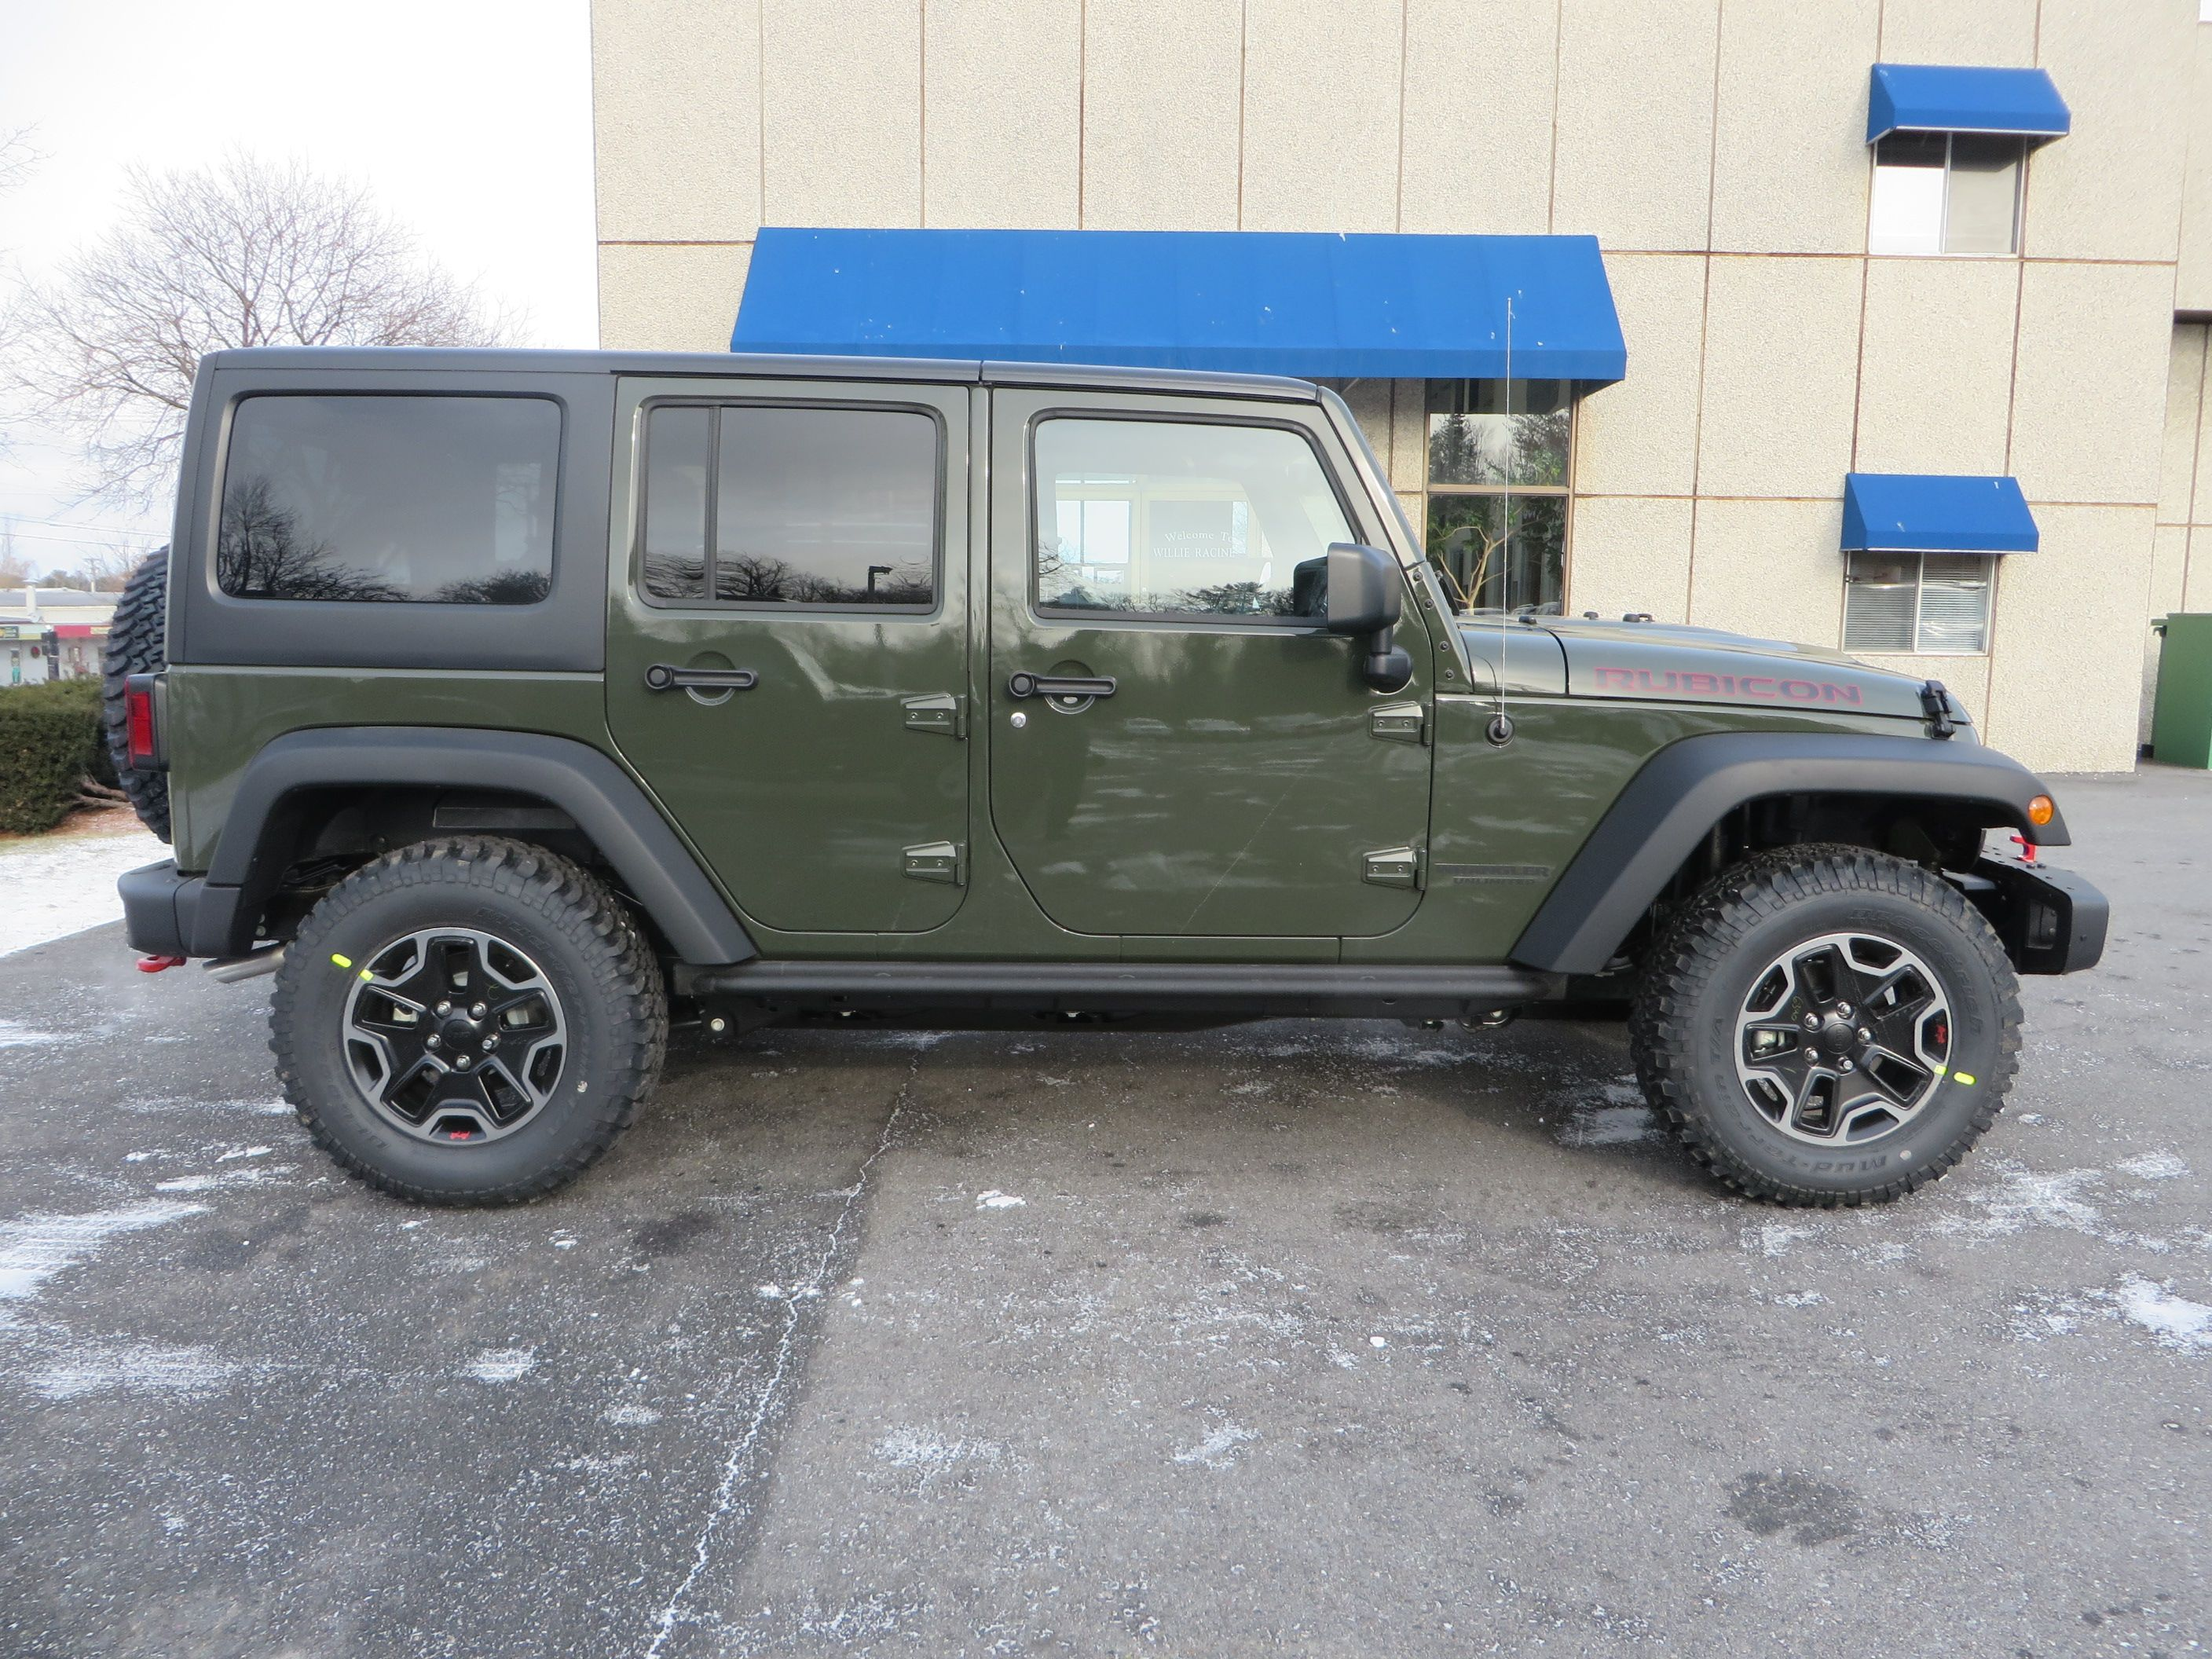 This 10th Anniversary Jeep Wrangler Rubicon Unlimited just got the